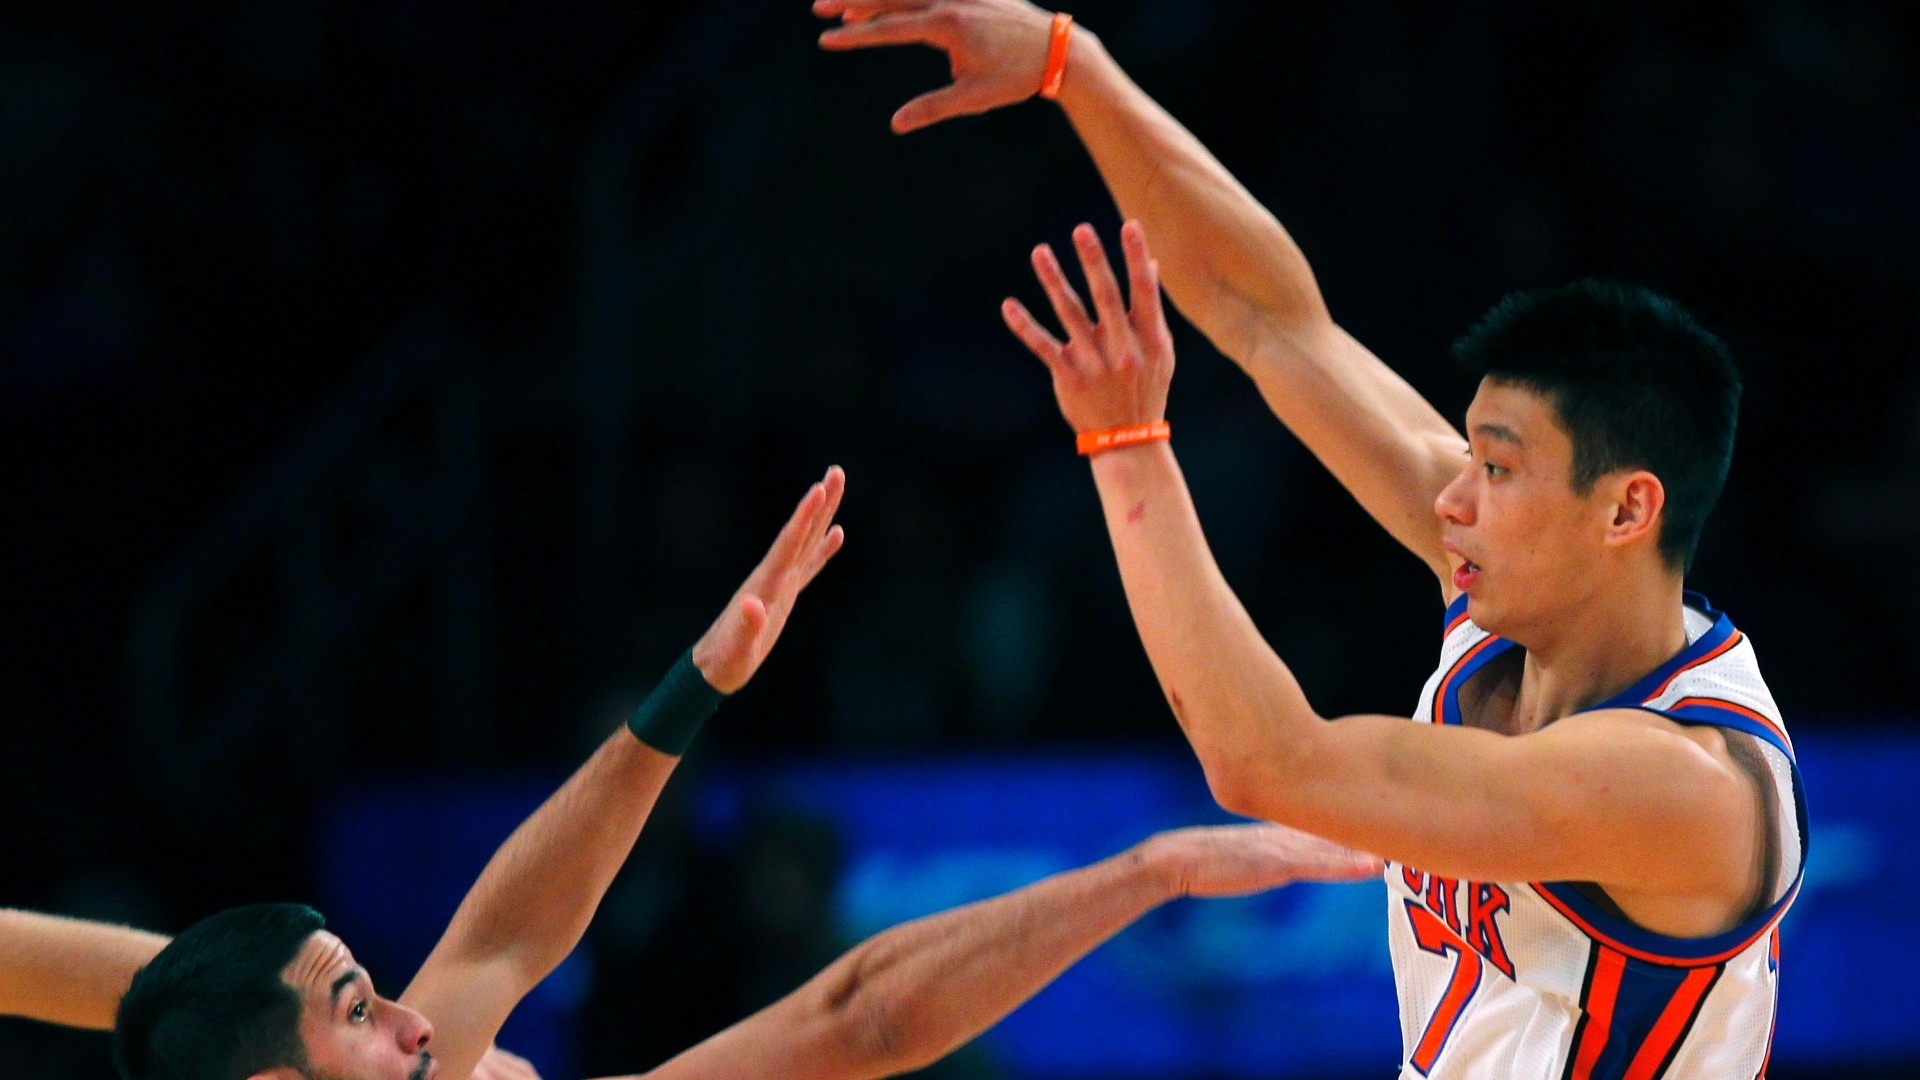 Jeremy Lin, do New York Knicks, encara marcação de Greivis Vasquez, do New Orleans Hornets, durante partida da NBA no Madison Square Garden, em Nova York